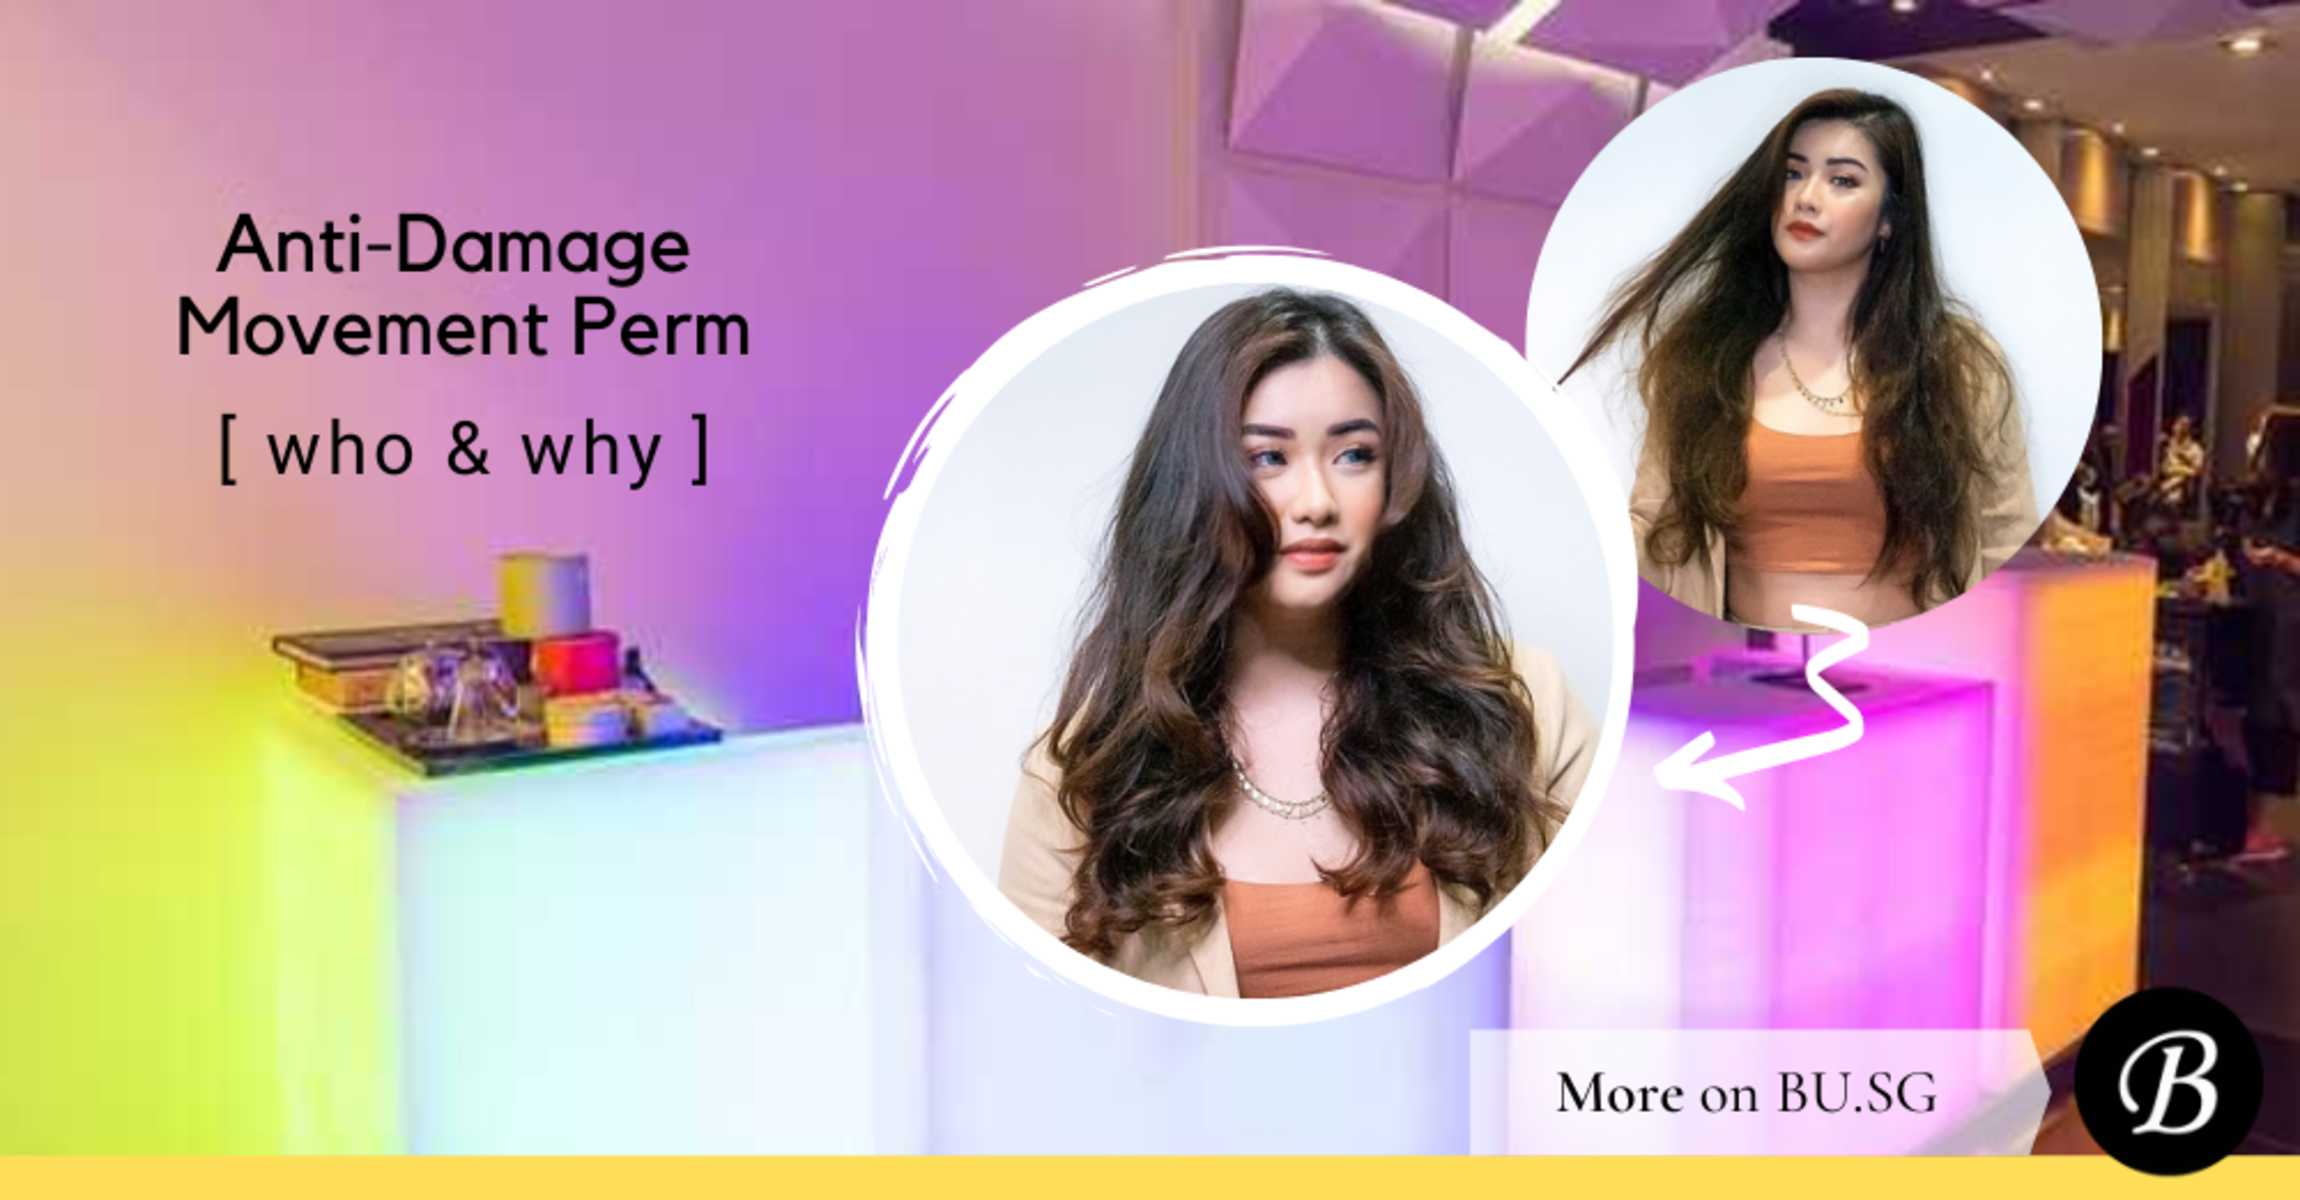 5 Reasons Why The Anti-Damage Movement Perm is the Best Perm for Singapore Girls Next Door